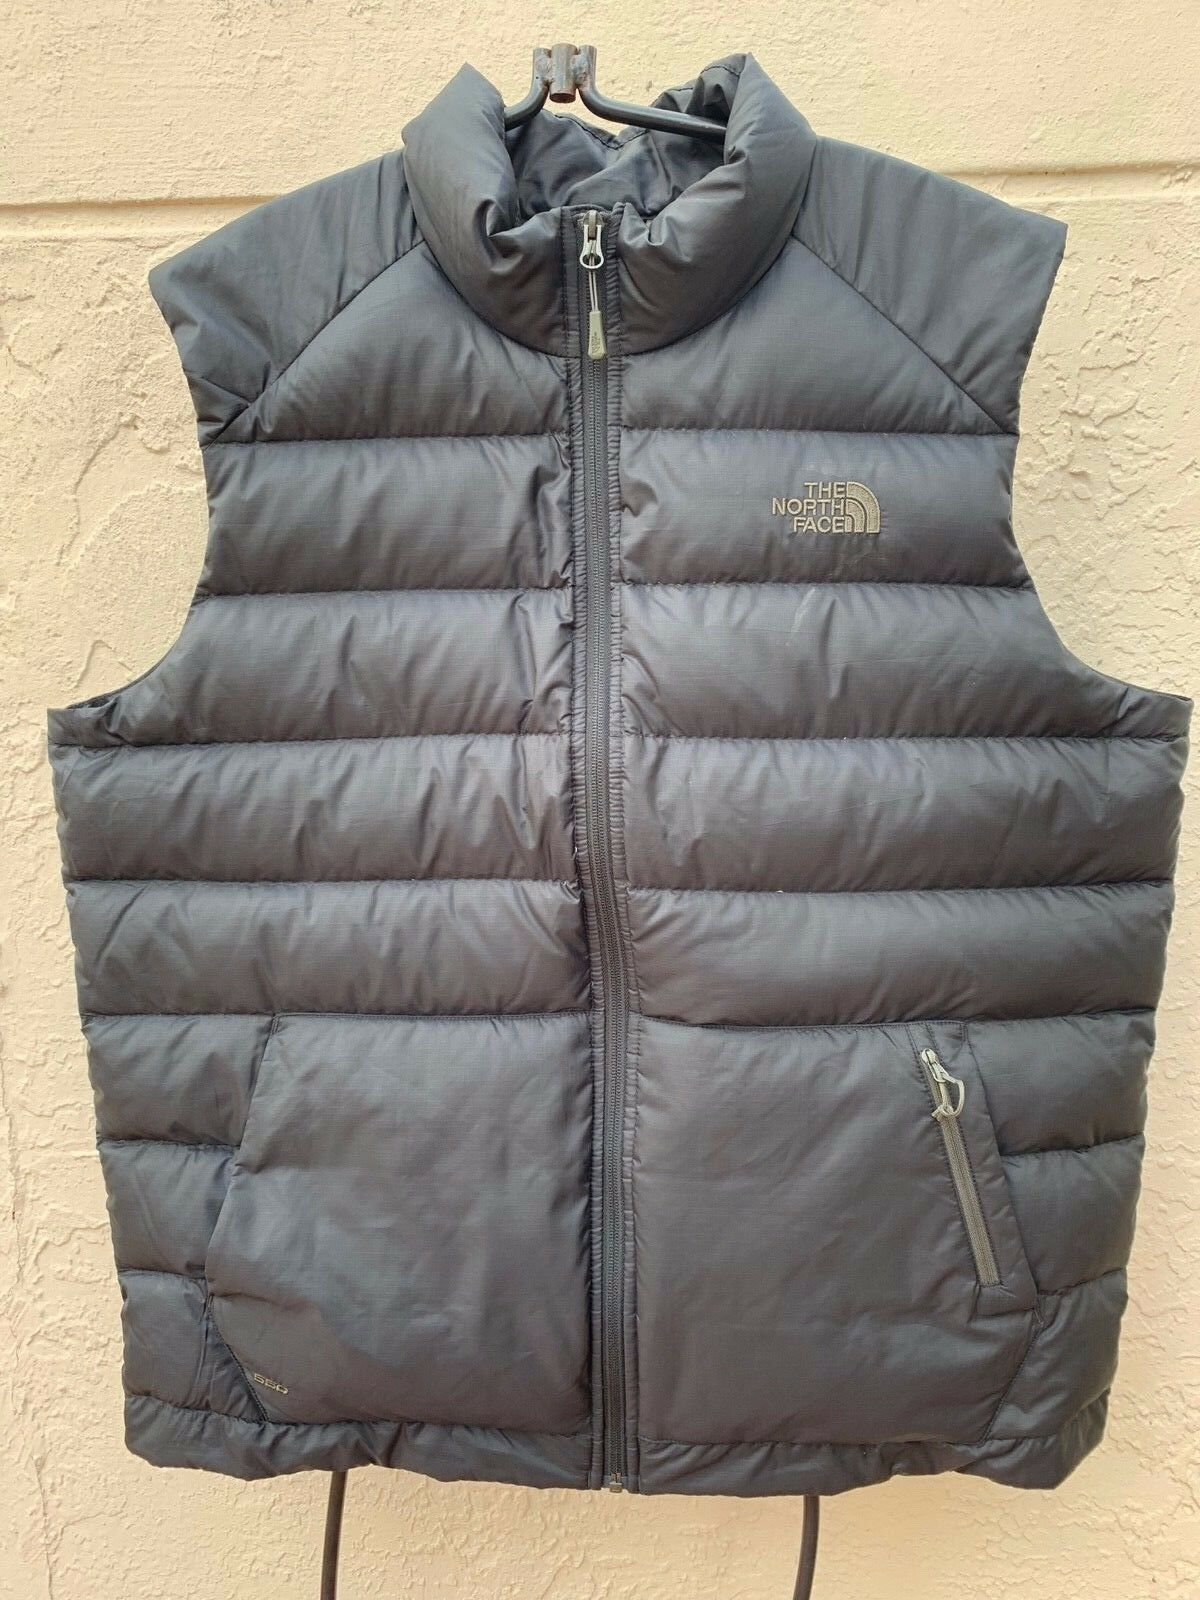 THE NORTH FACE MENS PUFFER DOWN FILL VEST SZ XL